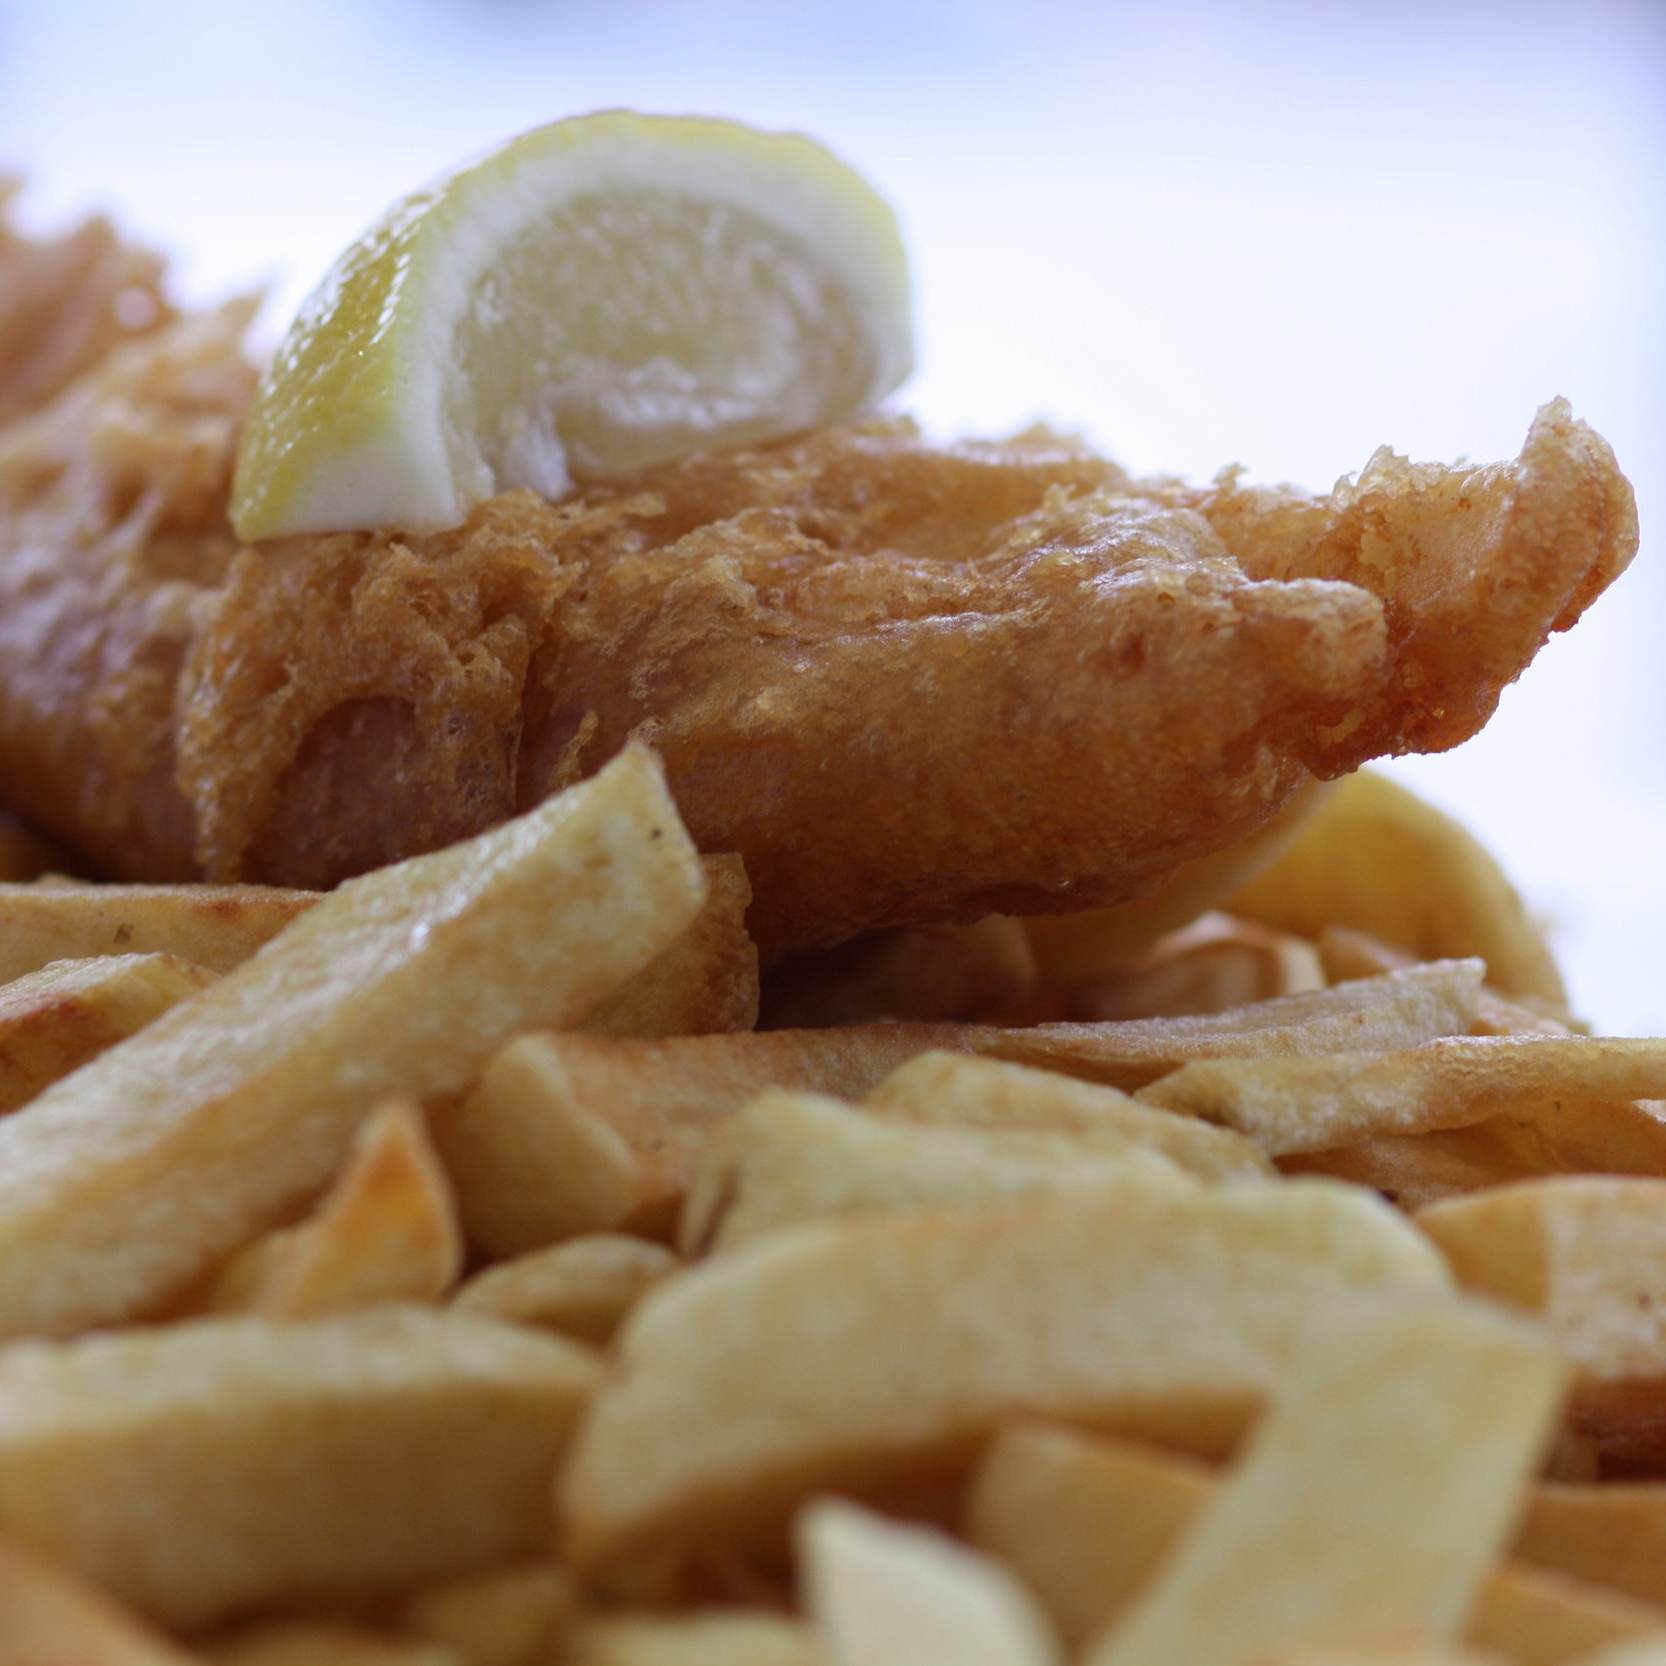 People have been enjoying Fish & Chips for over 150 years!